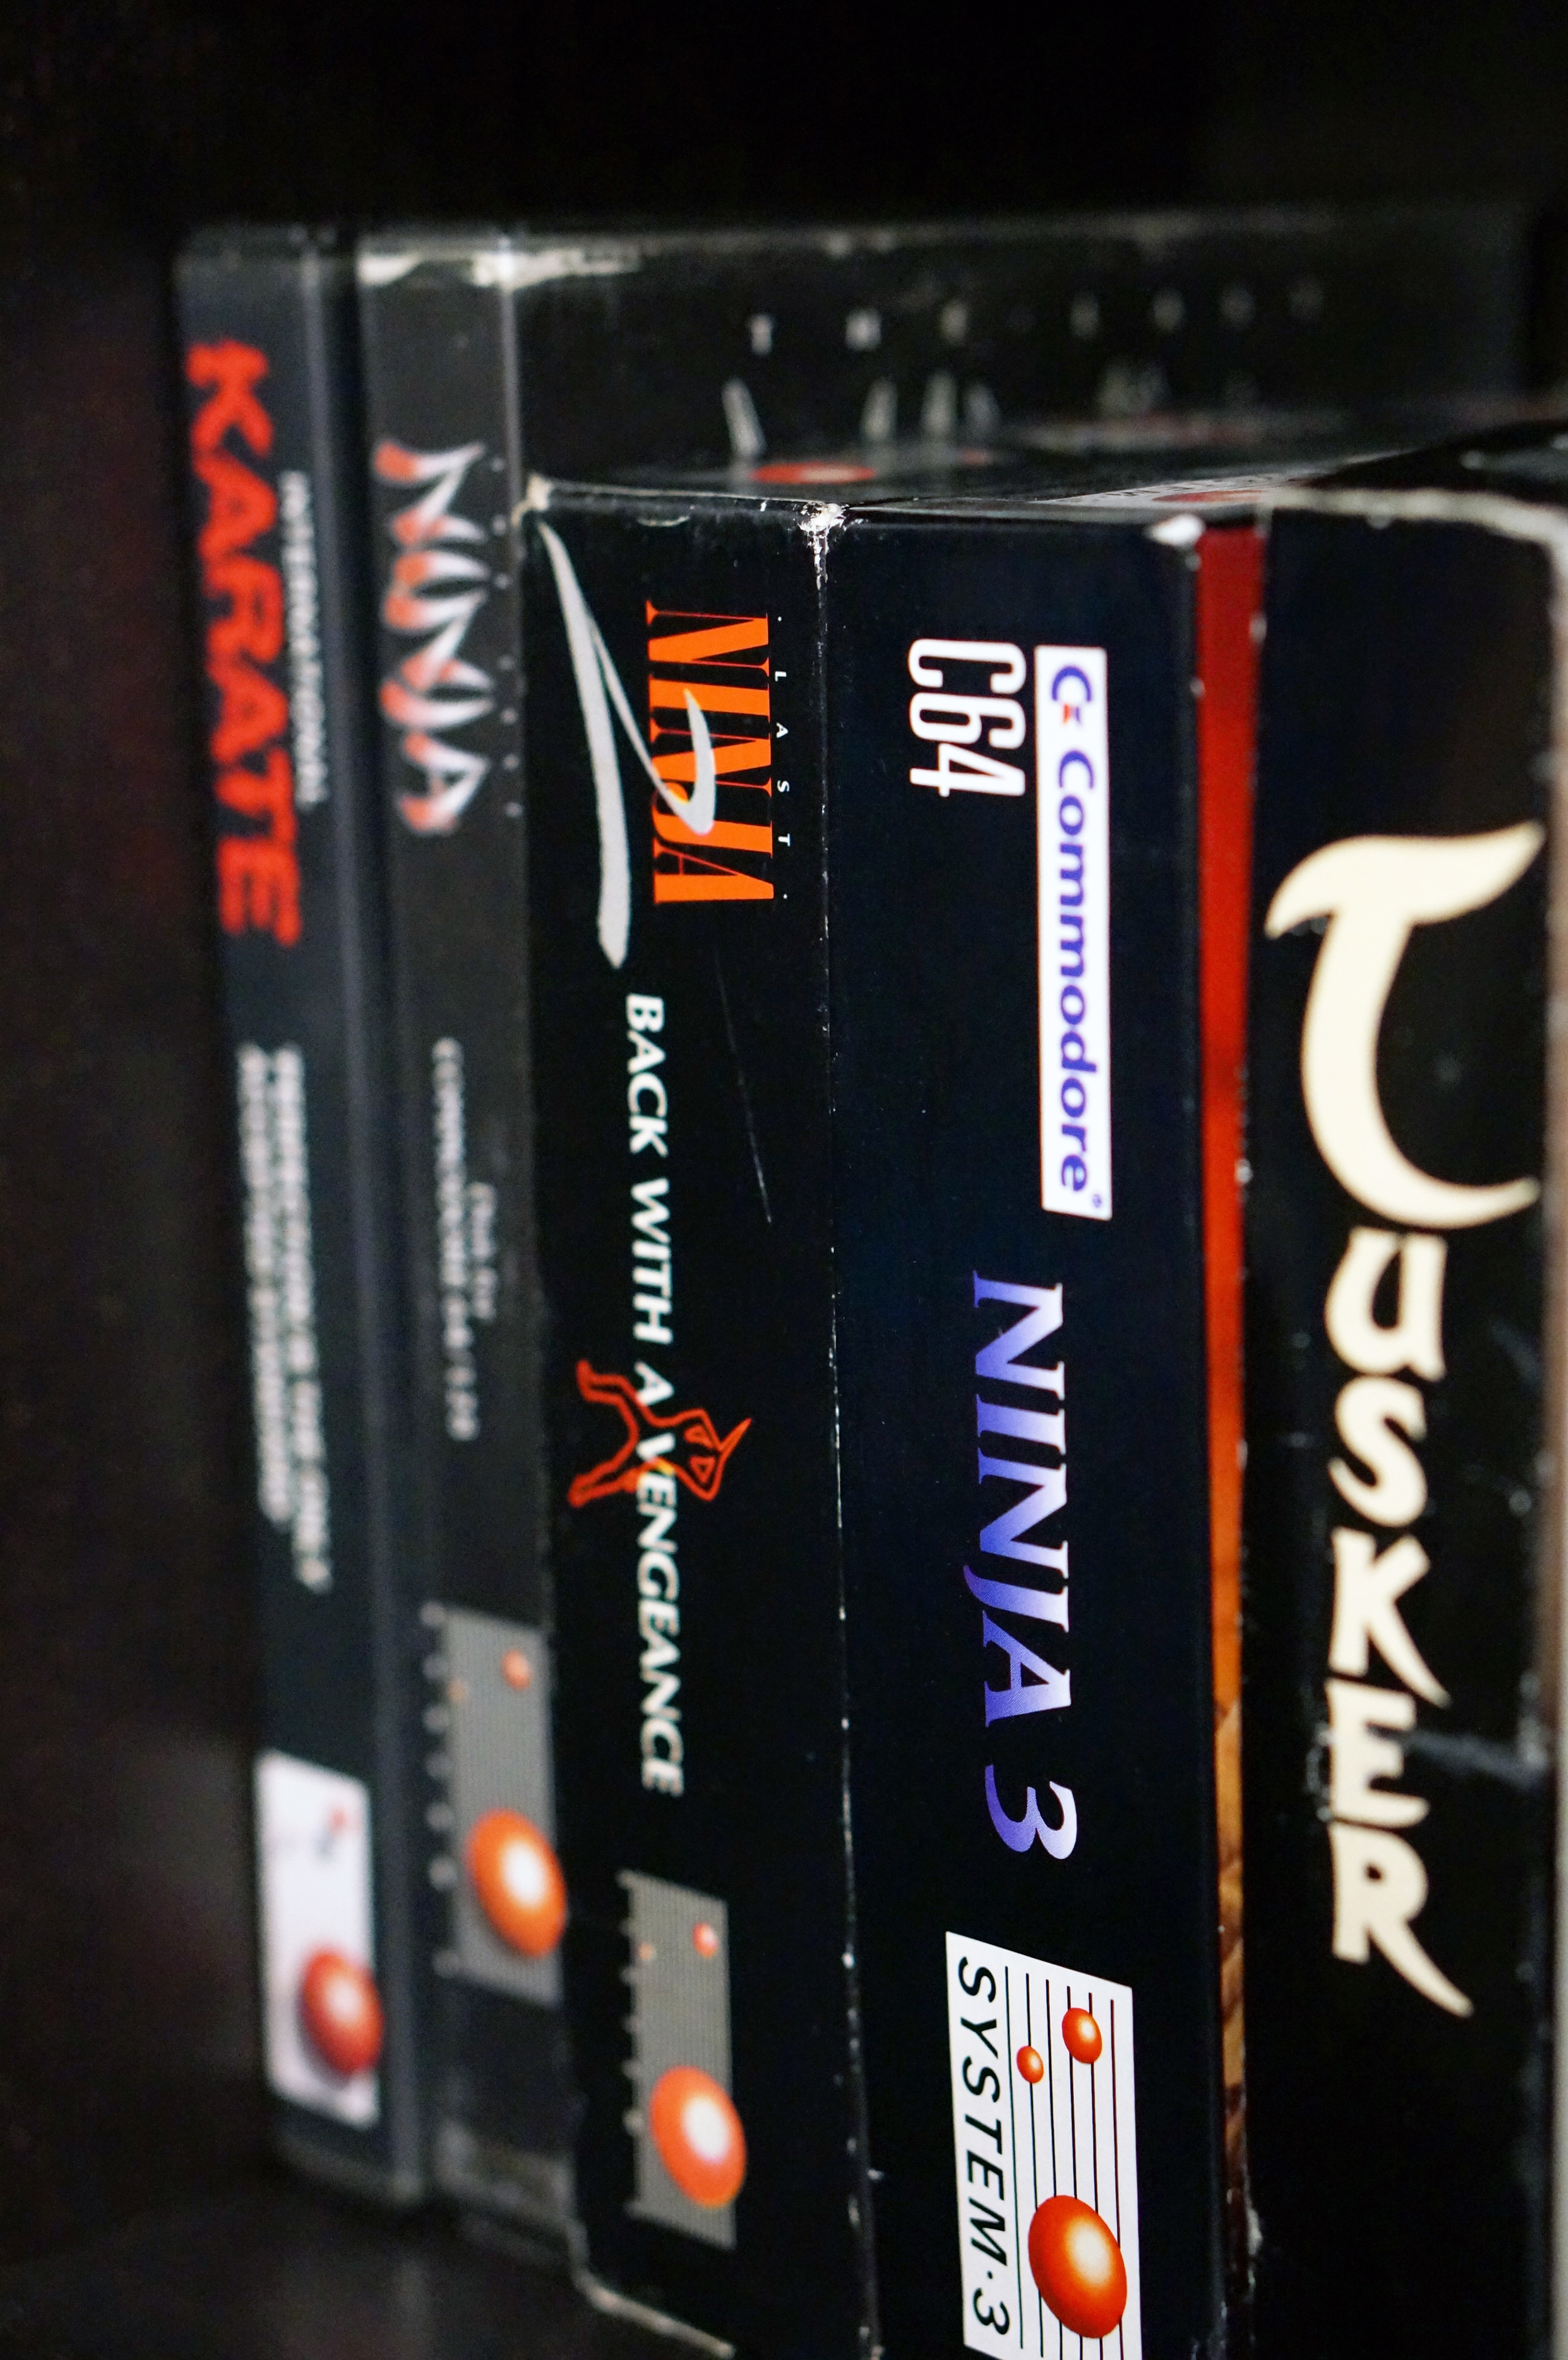 System 3 Games